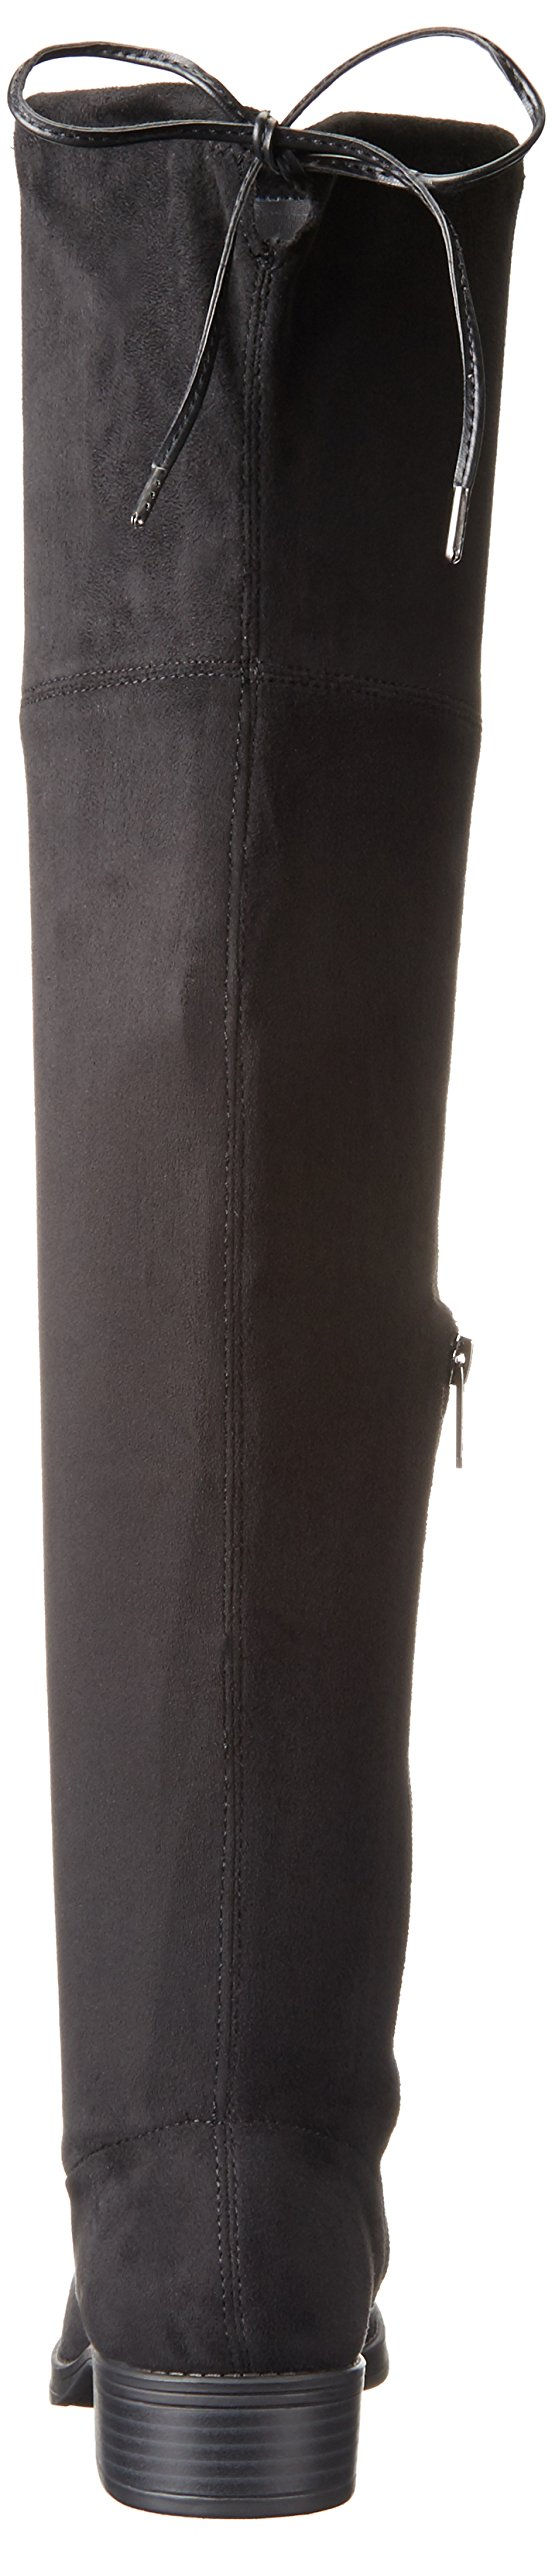 Circus by Sam Edelman Women's Peyton Over The Knee Boot, Black, 6.5 Medium US by Circus by Sam Edelman (Image #2)